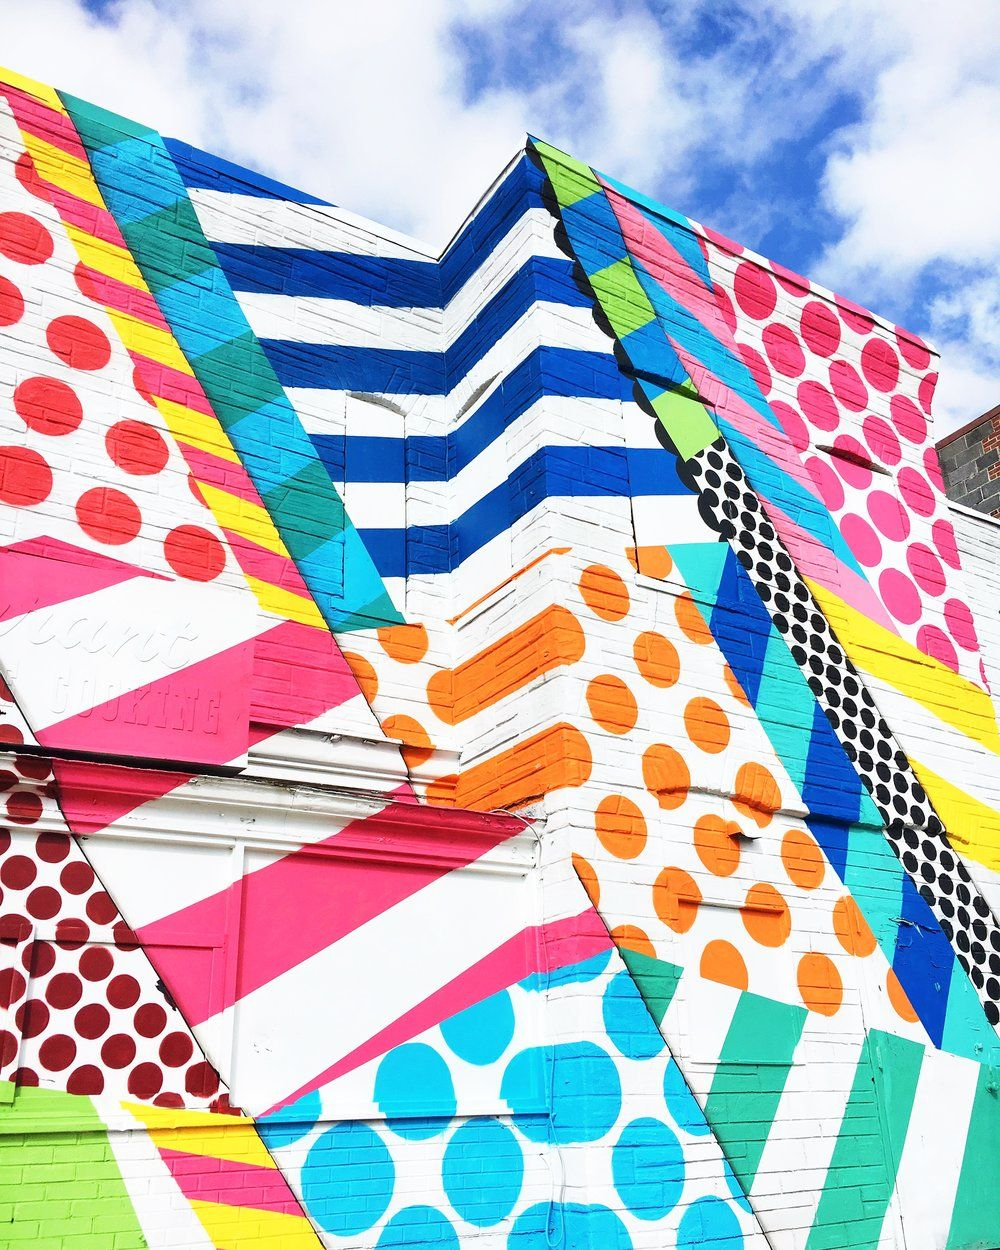 DC's Most Instagrammable Backdrops The Best Street Art